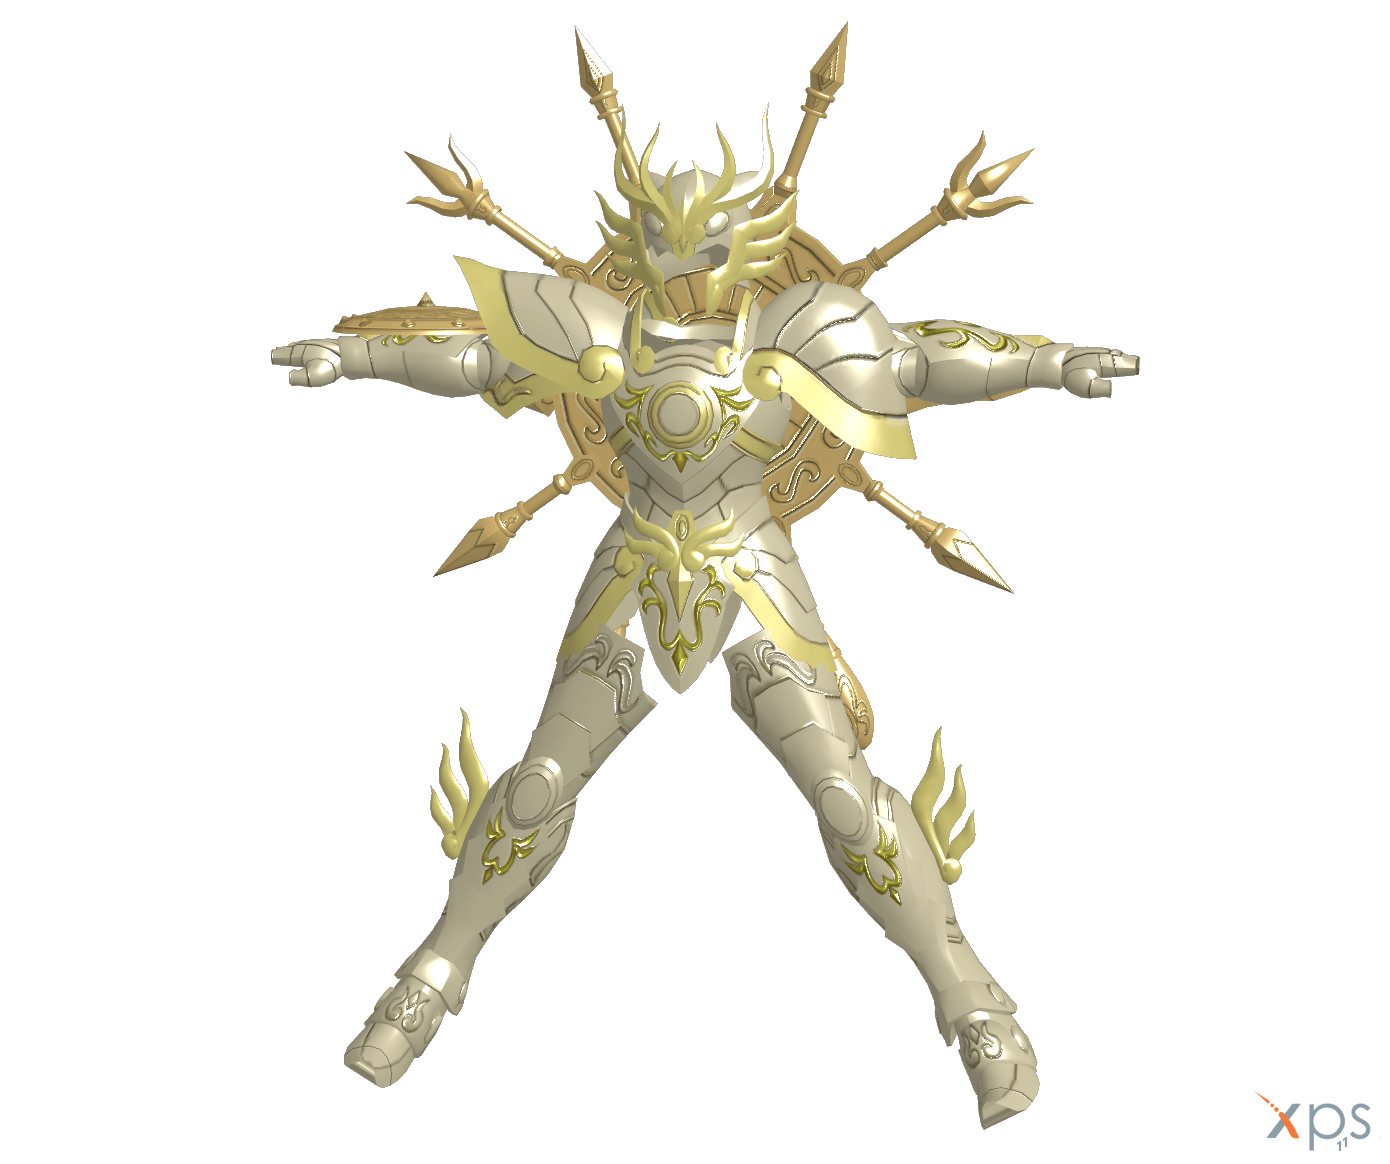 Saint Seiya Libra Ss Ss Libra God Cloth By Loriscangini On Deviantart